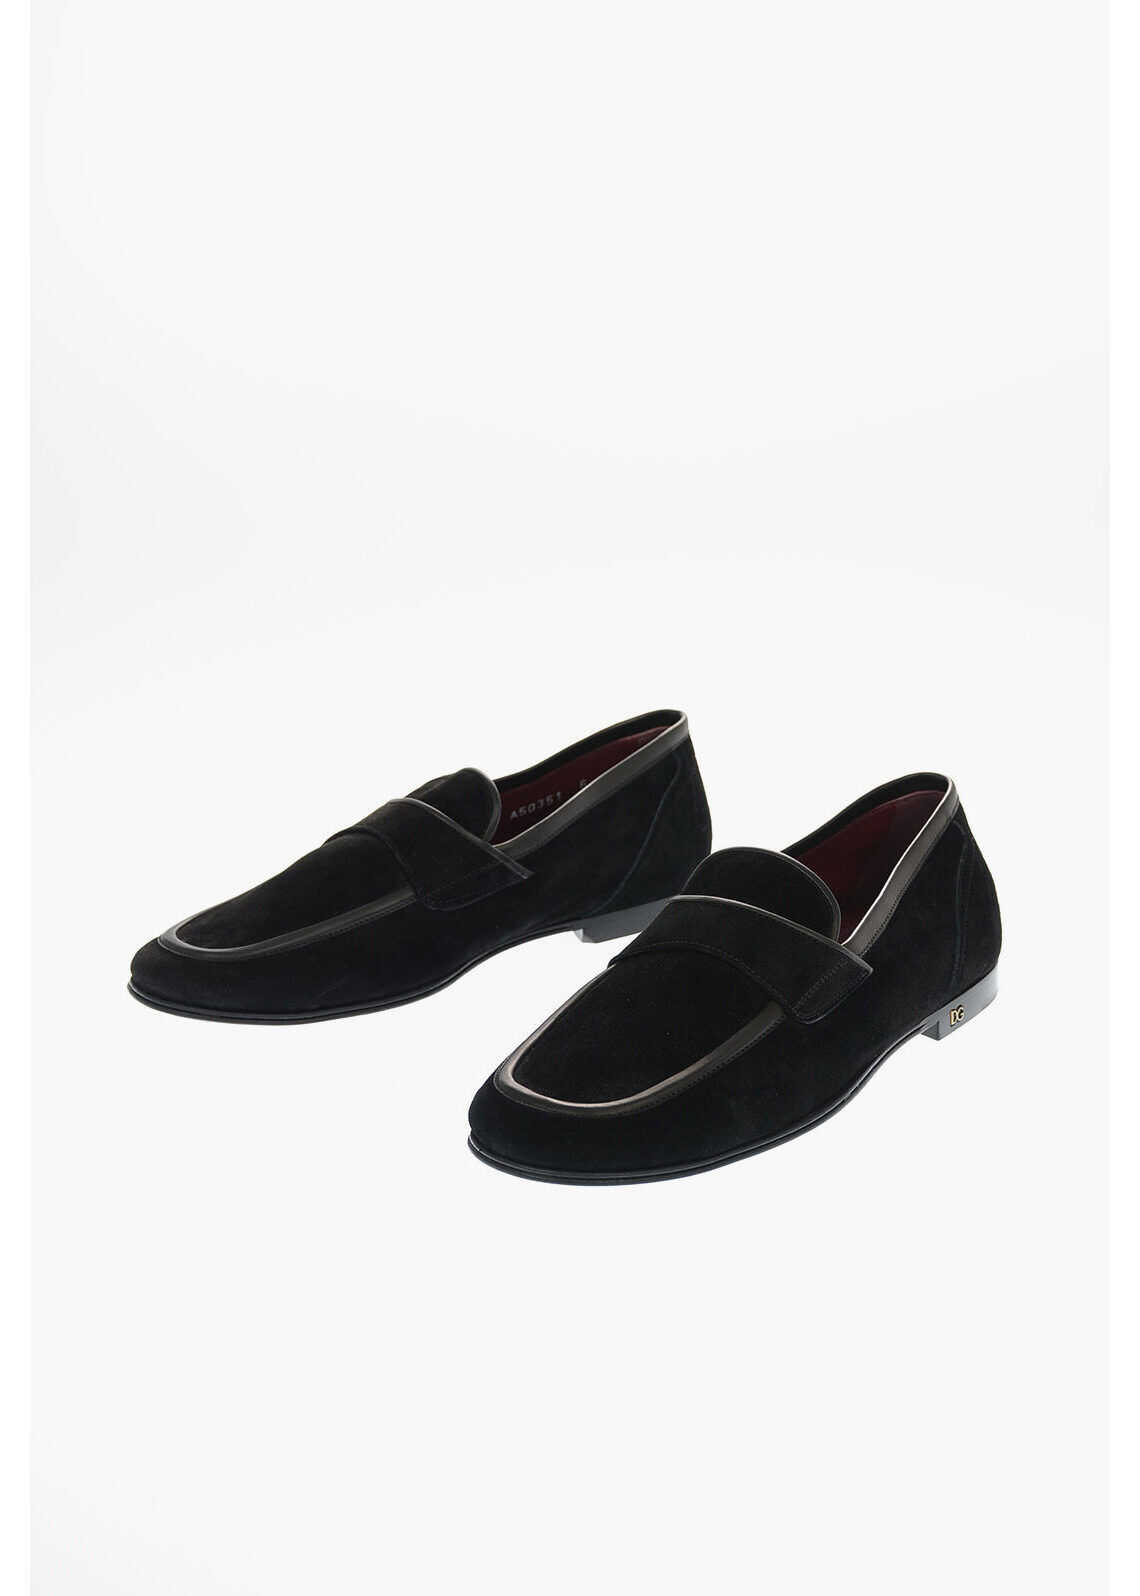 Dolce & Gabbana Suede ERICE Loafers BLACK imagine b-mall.ro